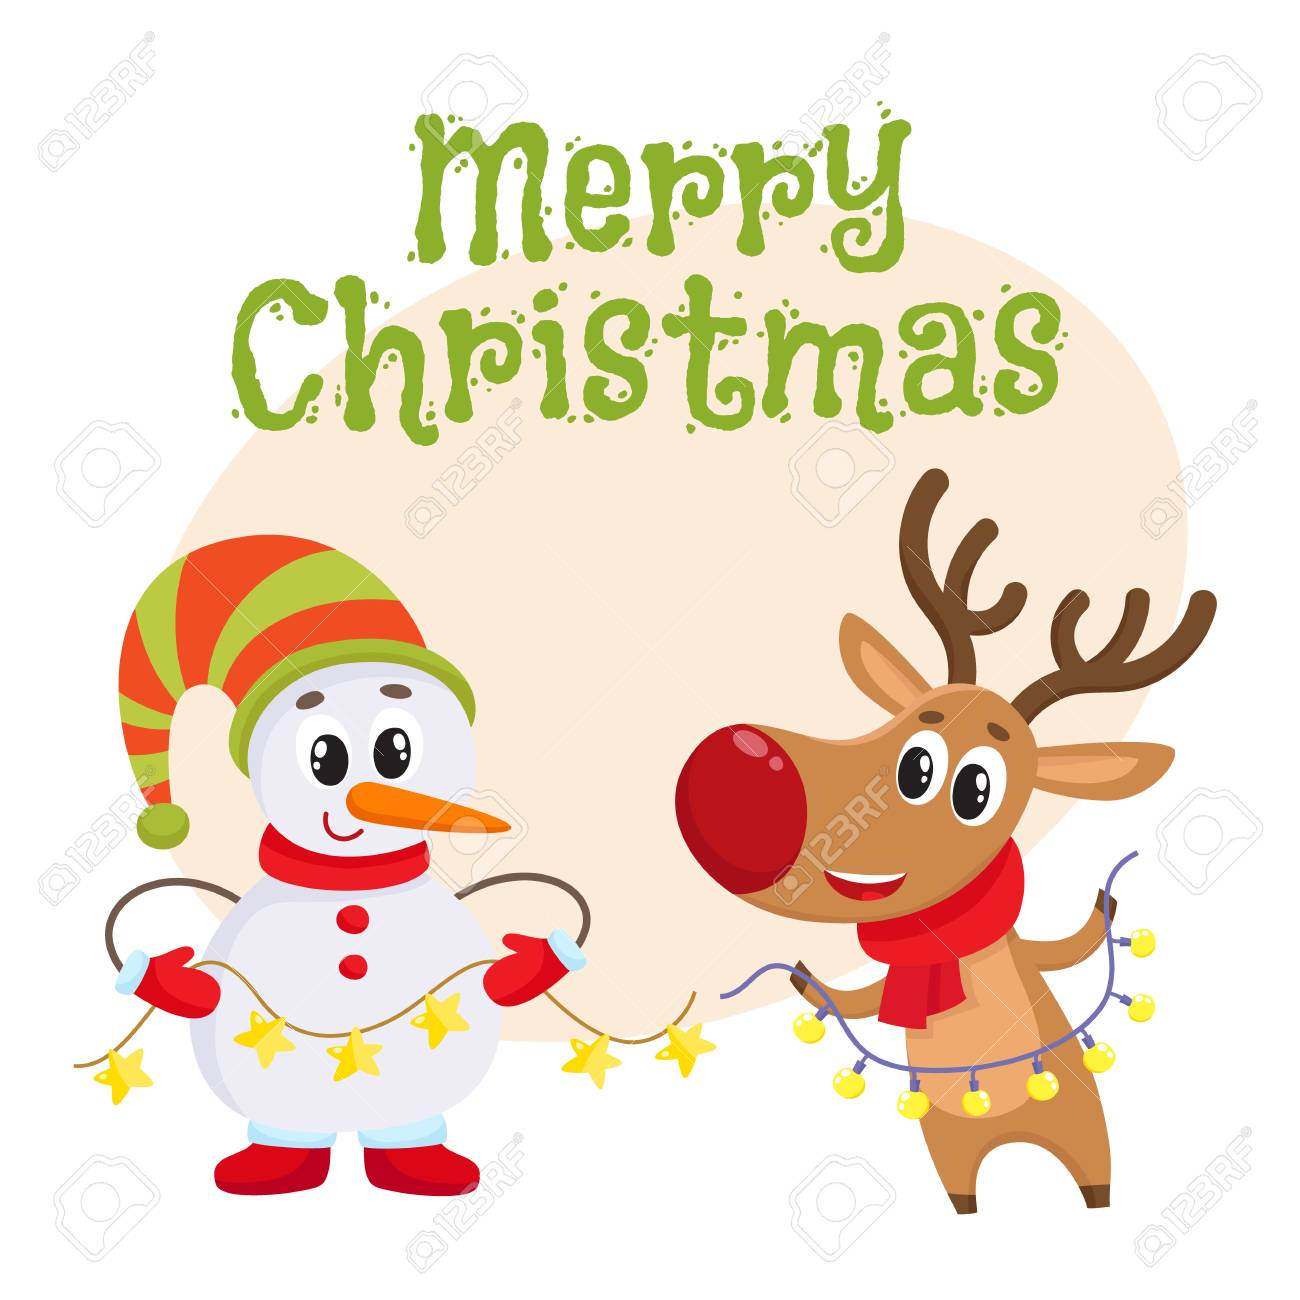 Merry christmas greeting card template with funny reindeer and merry christmas greeting card template with funny reindeer and snowman holding public electronic garlands with light m4hsunfo